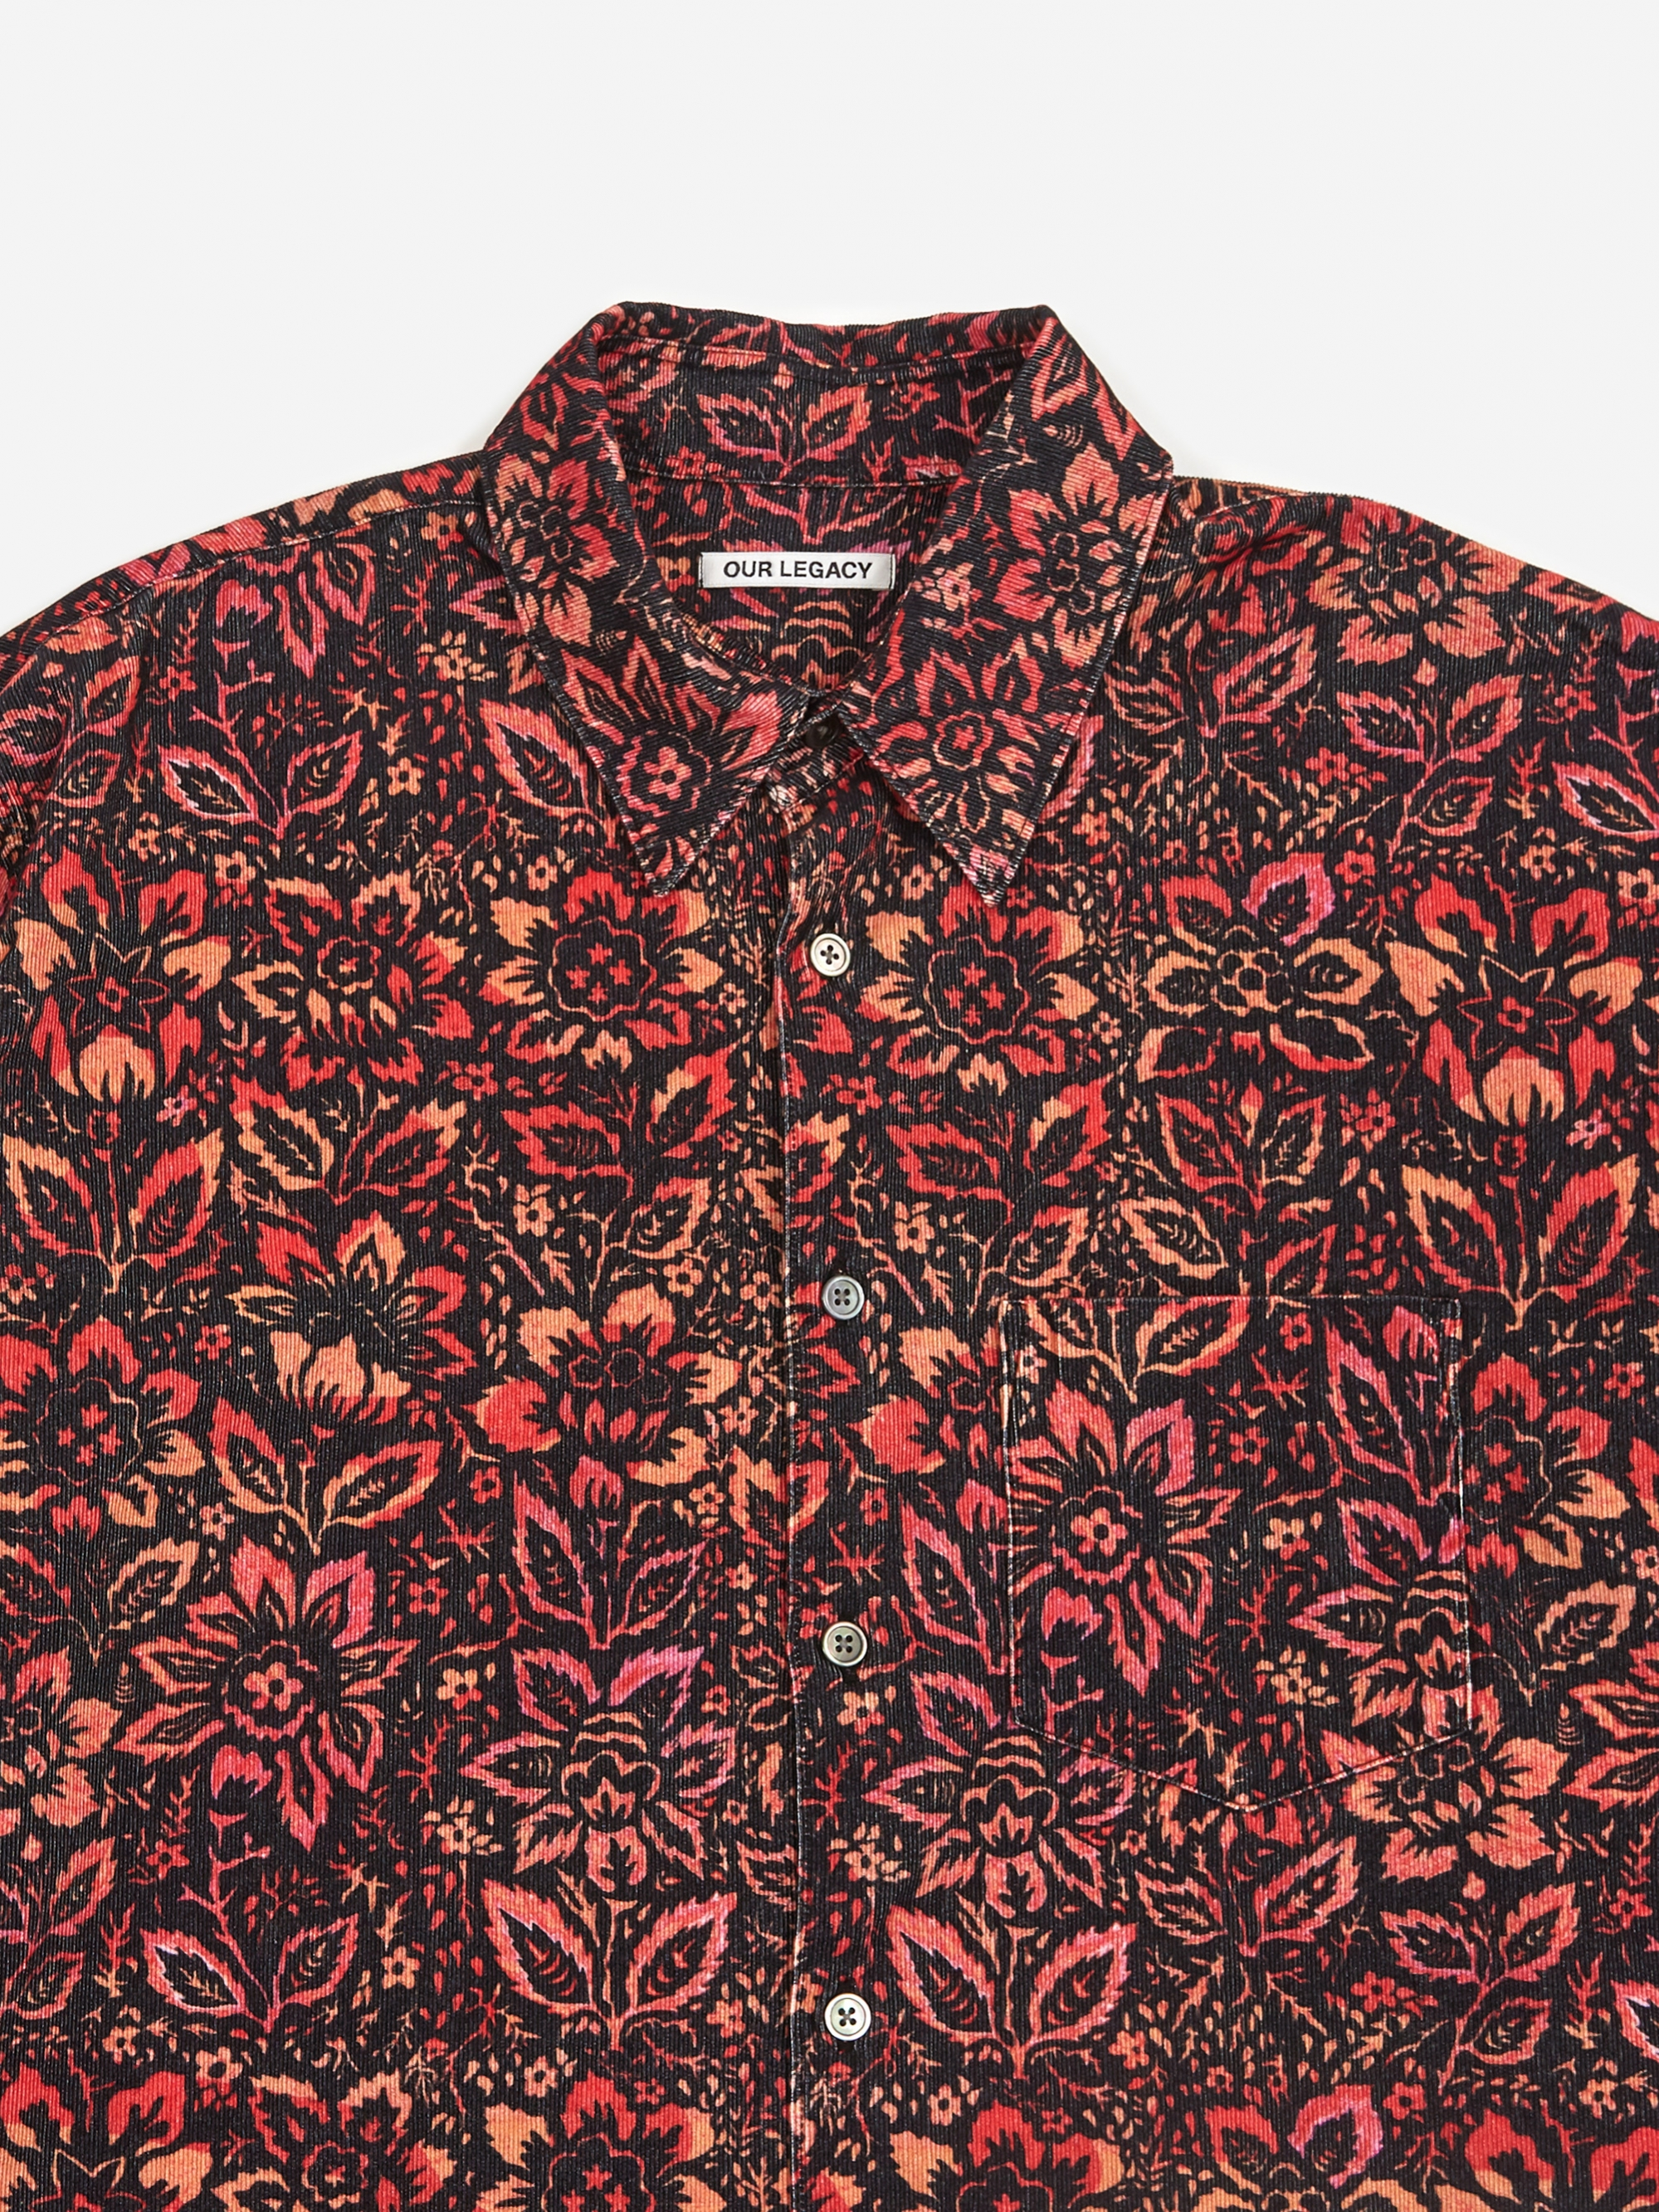 Our Legacy Coco 70 S Floral Shirt Floral Wallpaper Print